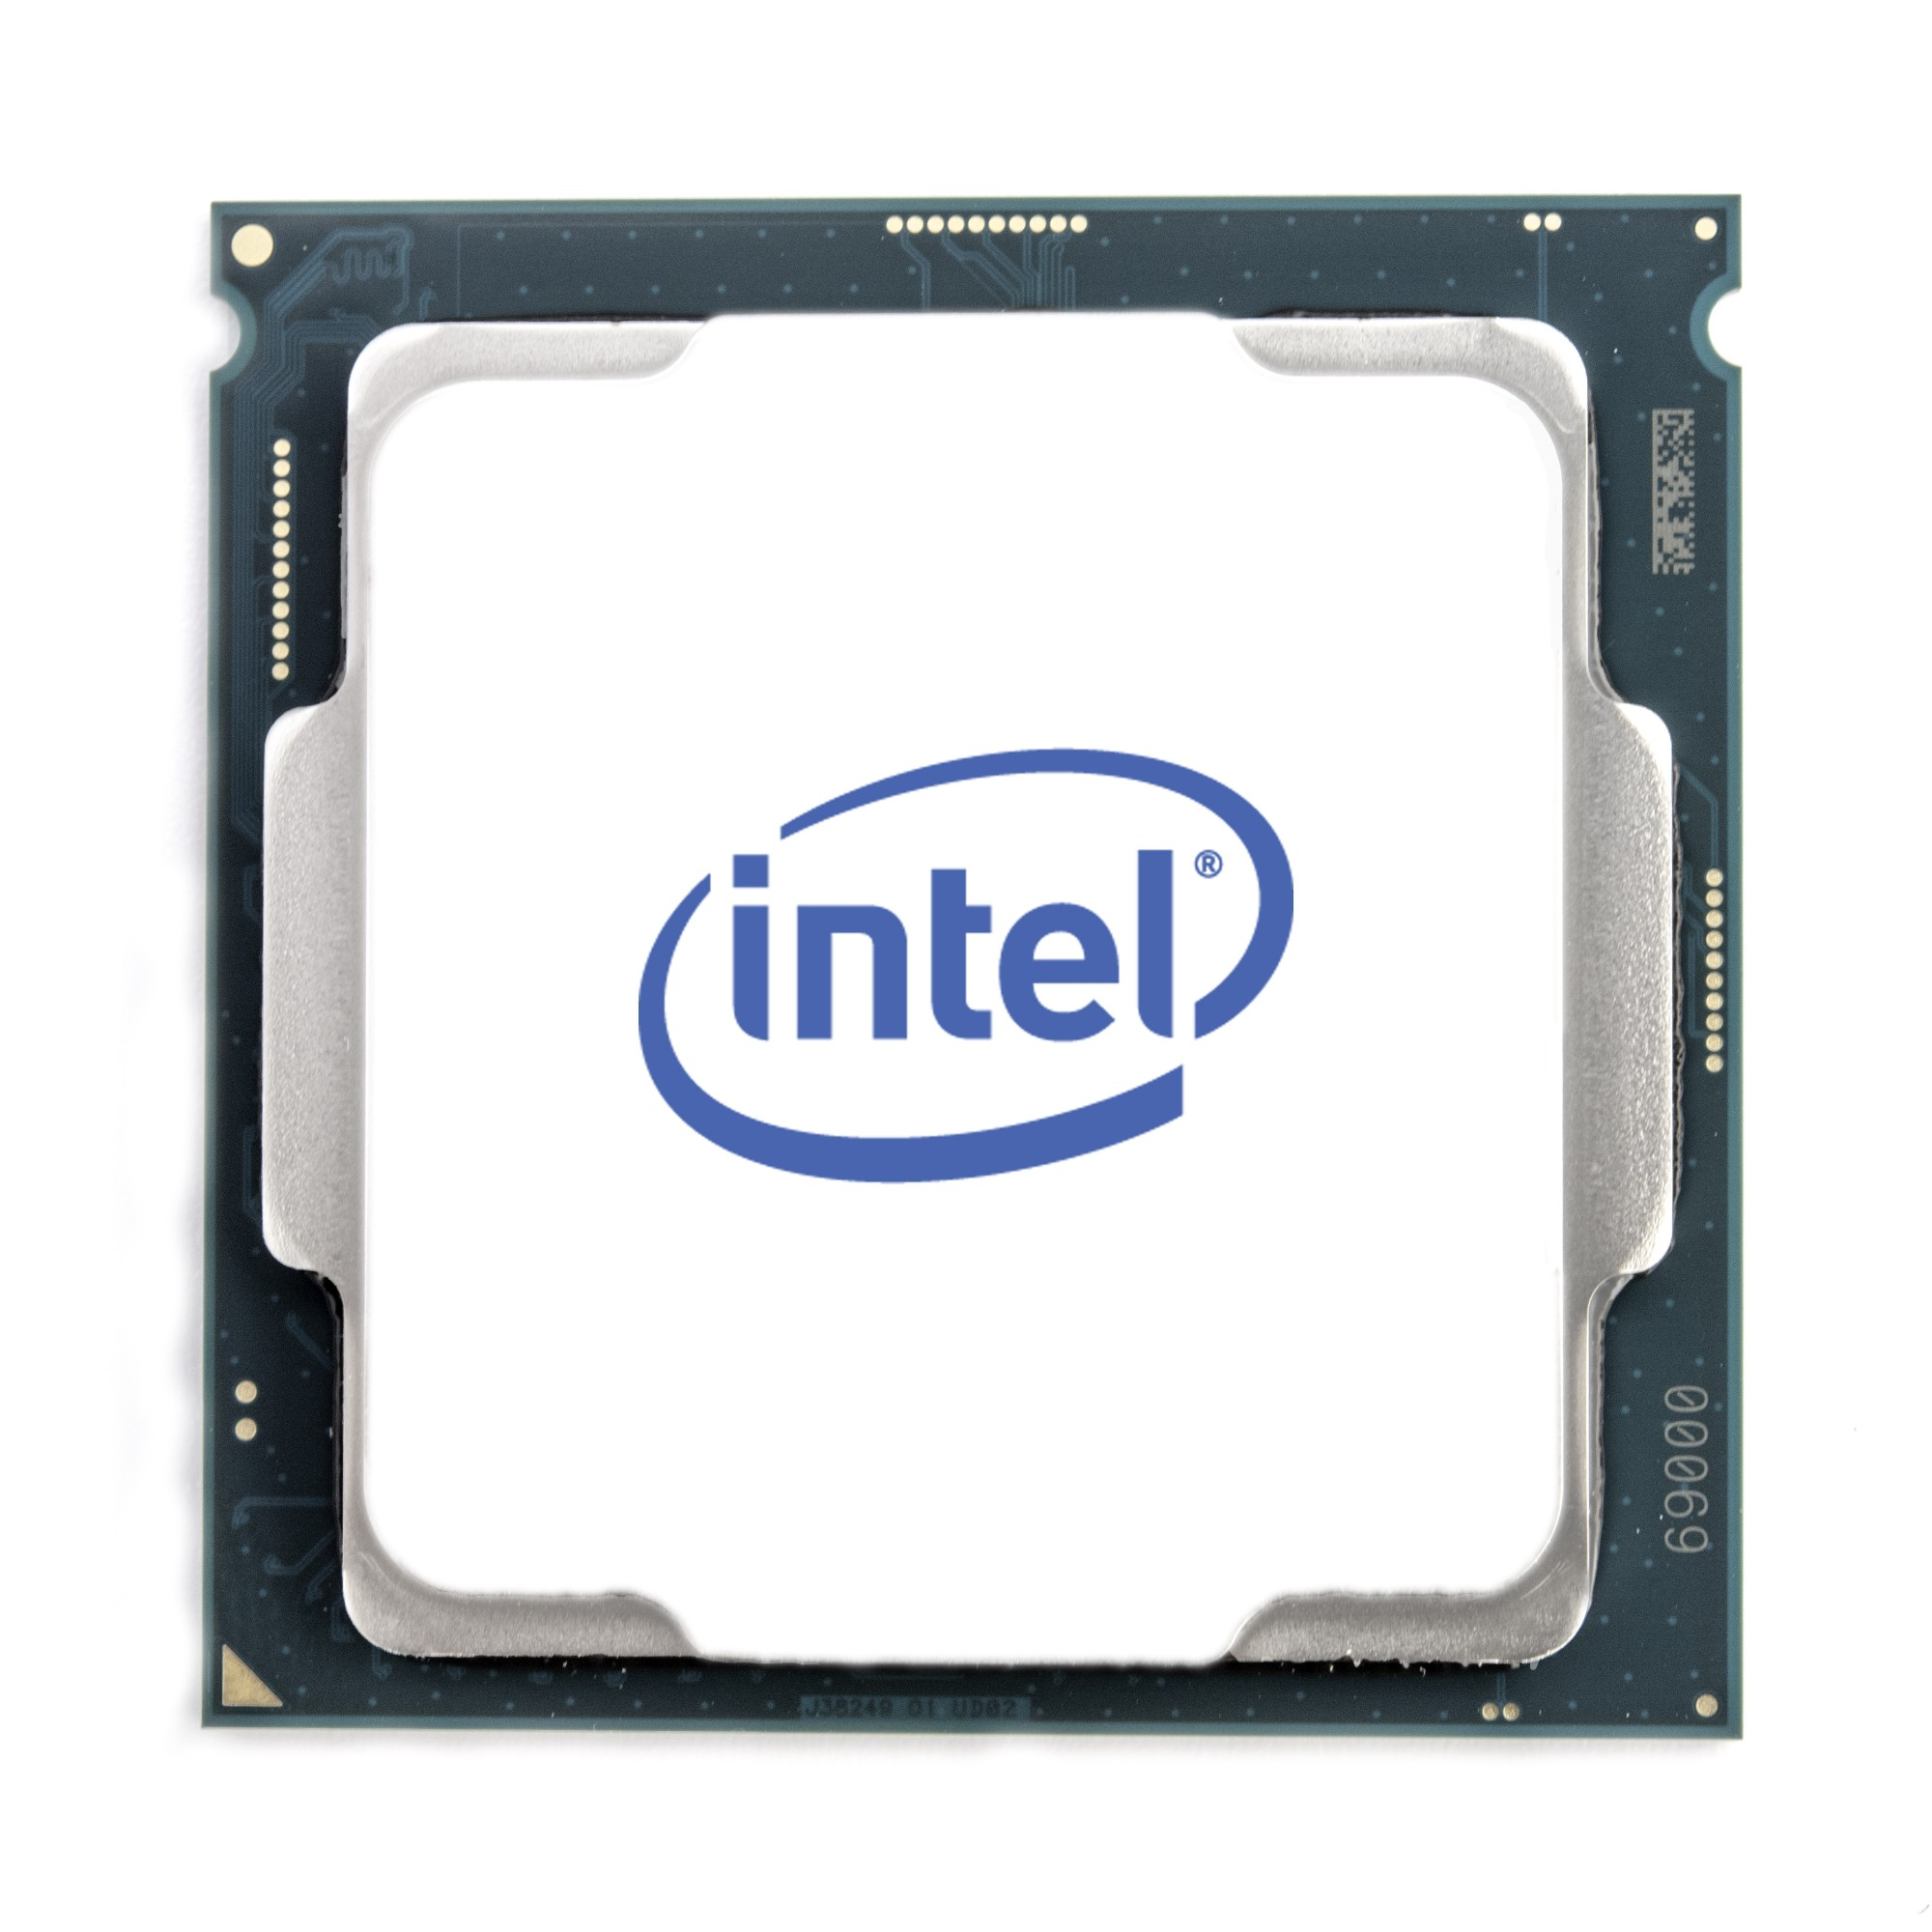 Intel Celeron G5920 processor 3.5 GHz 2 MB Smart Cache